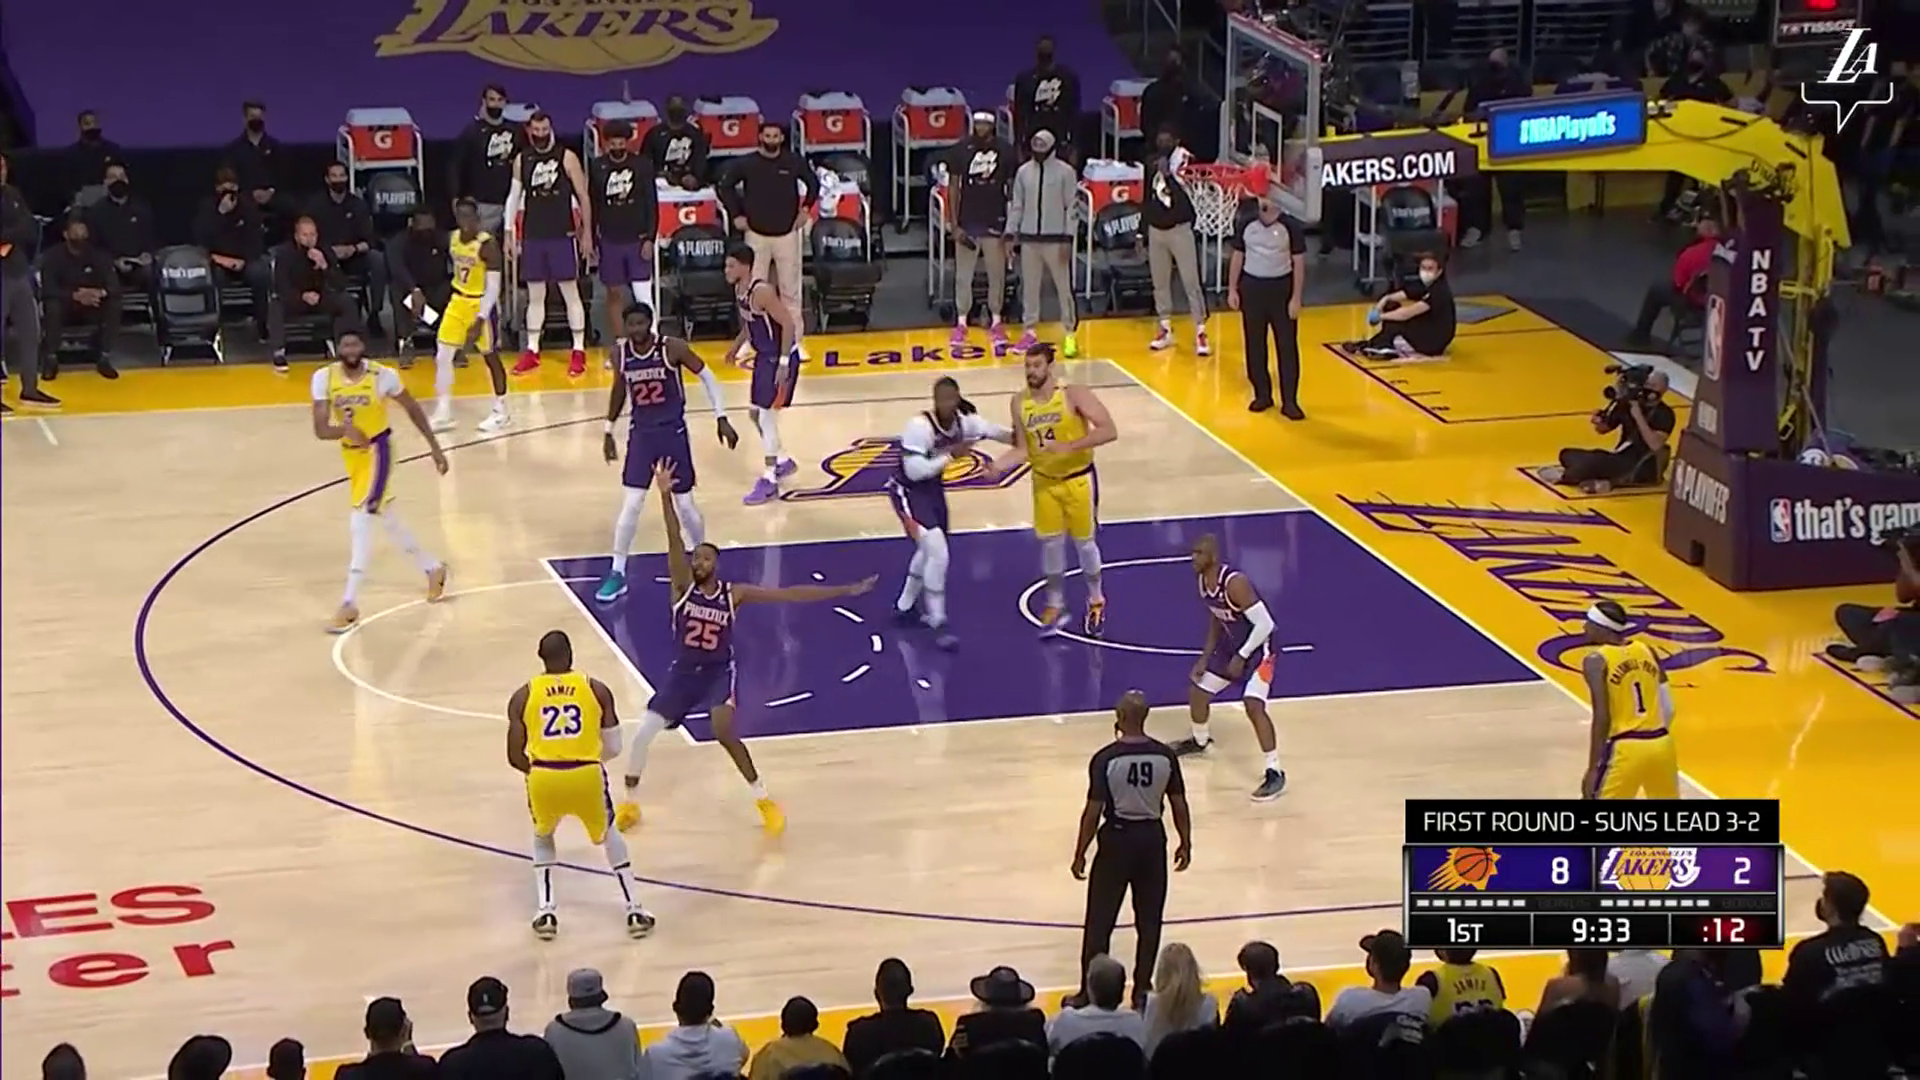 HIGHLIGHTS | Los Angeles Lakers vs Phoenix Suns - Game 6